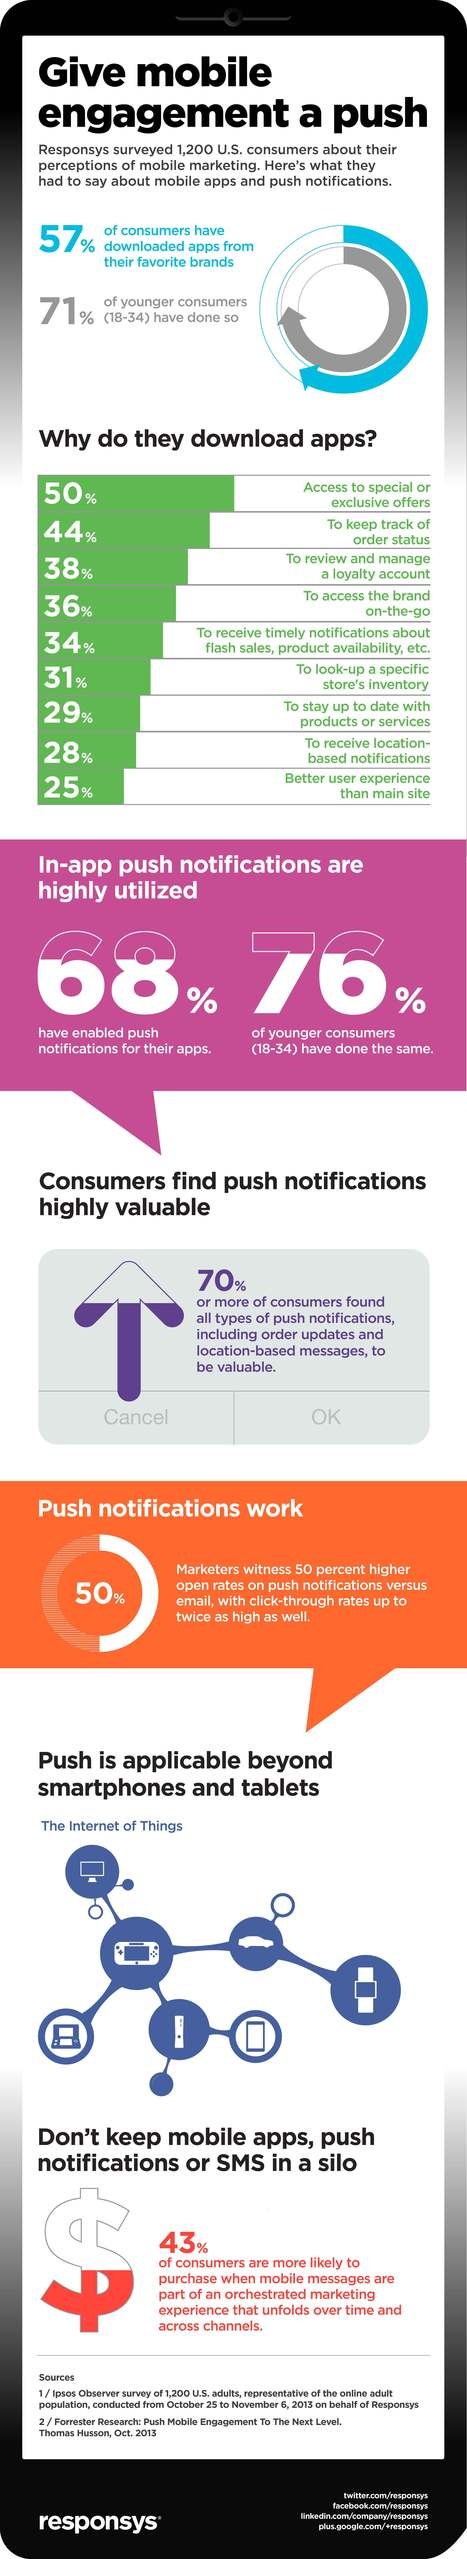 Give mobile marketing a 'push' [Infographic] | Responsys New School Marketing Blog | Trend Alert | Scoop.it